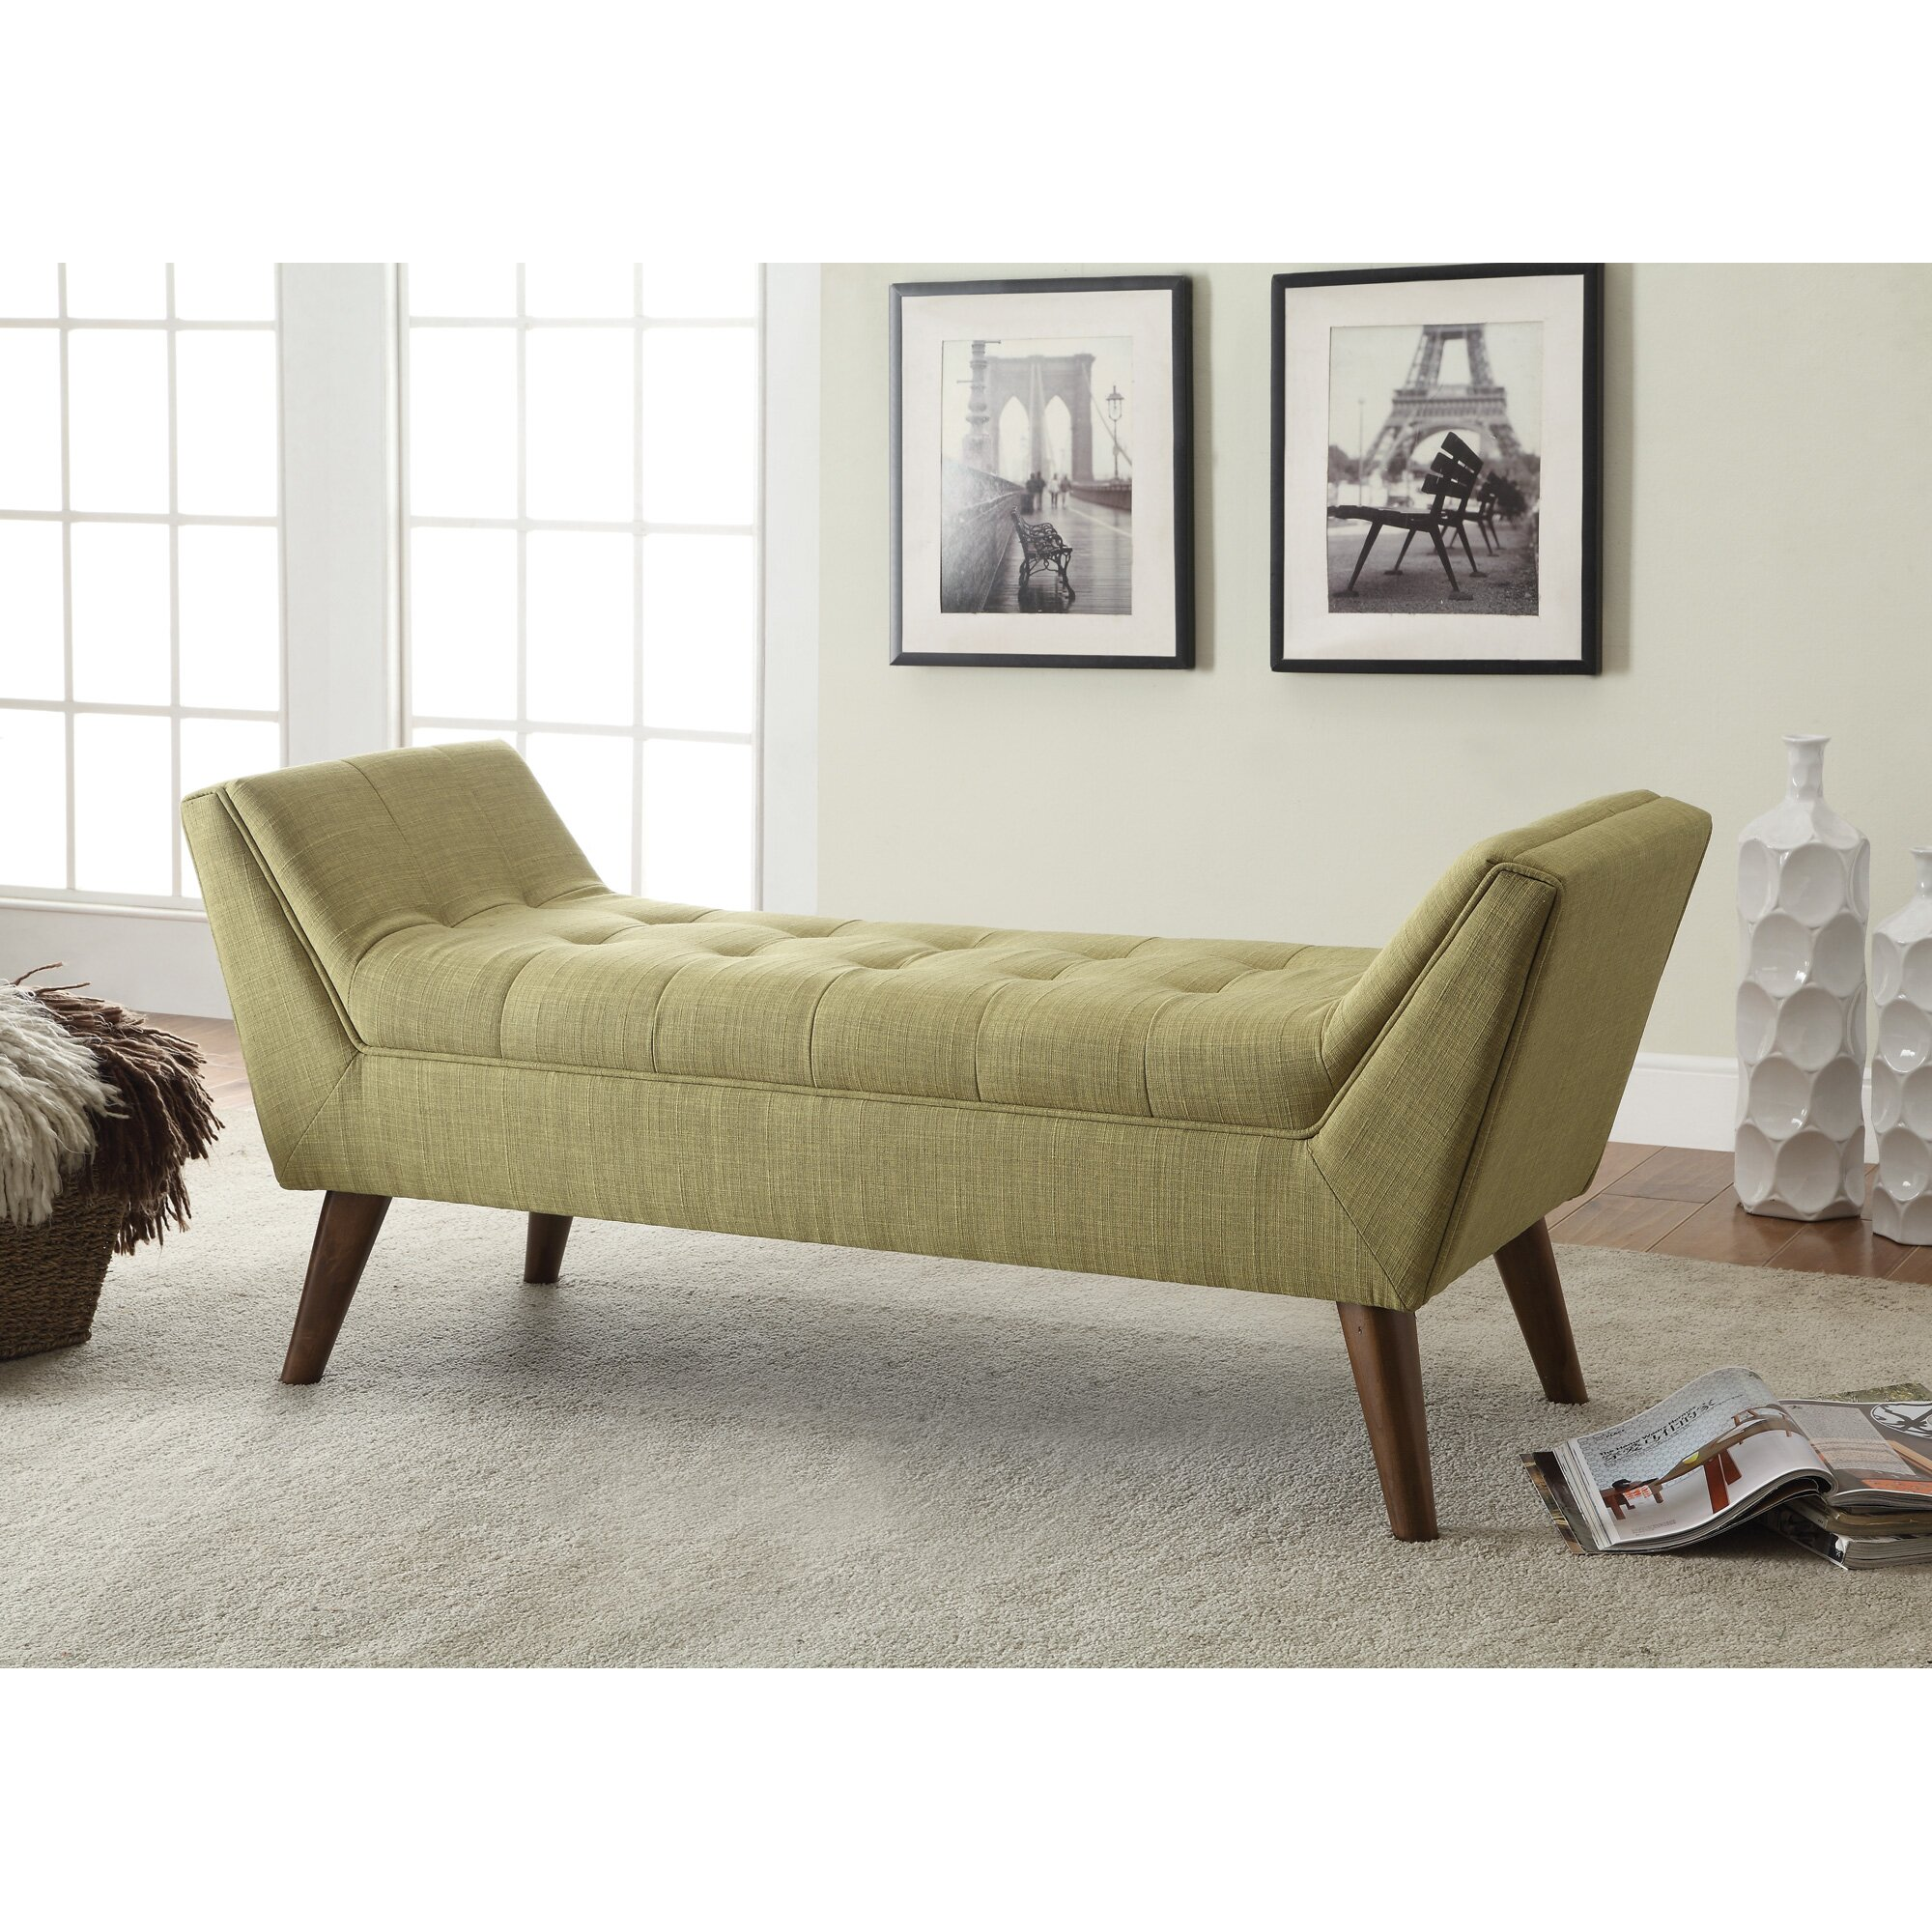 Langley Street Serena Upholstered Bedroom Bench Reviews Wayfair